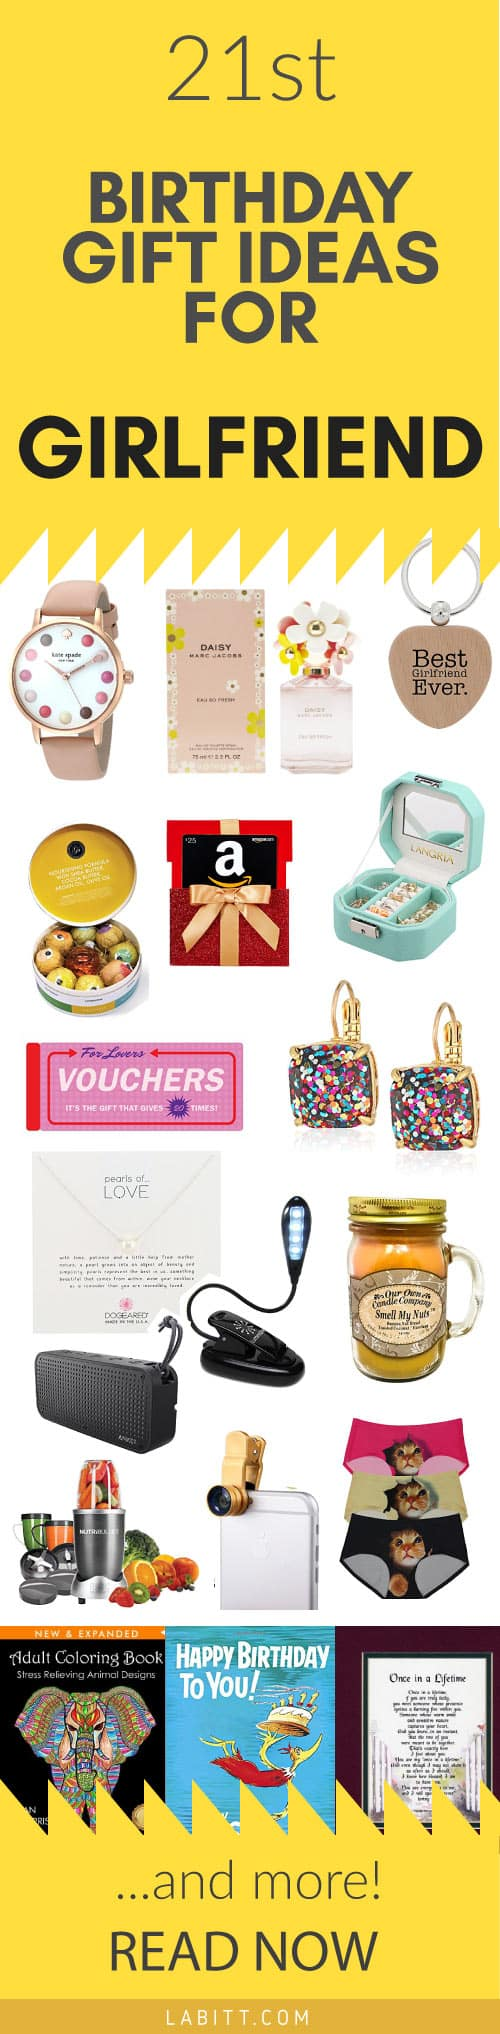 Cool 21st Birthday Gift Ideas for Girlfriend. Birthday Gifts for her, for women, for friends. Happy Birthday!